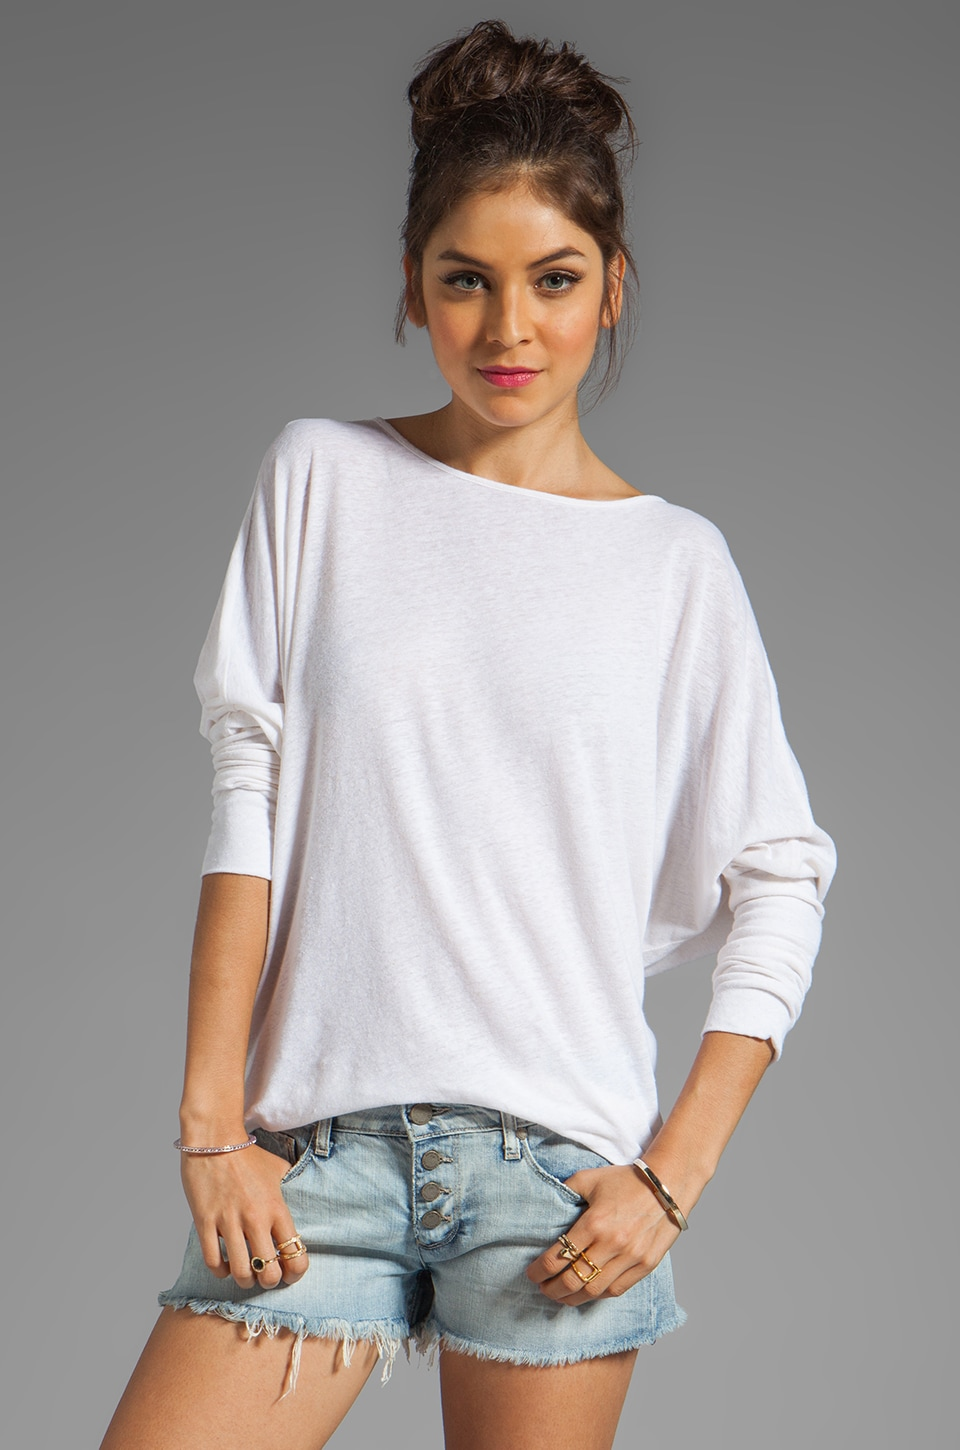 My Line Sage Contrast Dolman in White